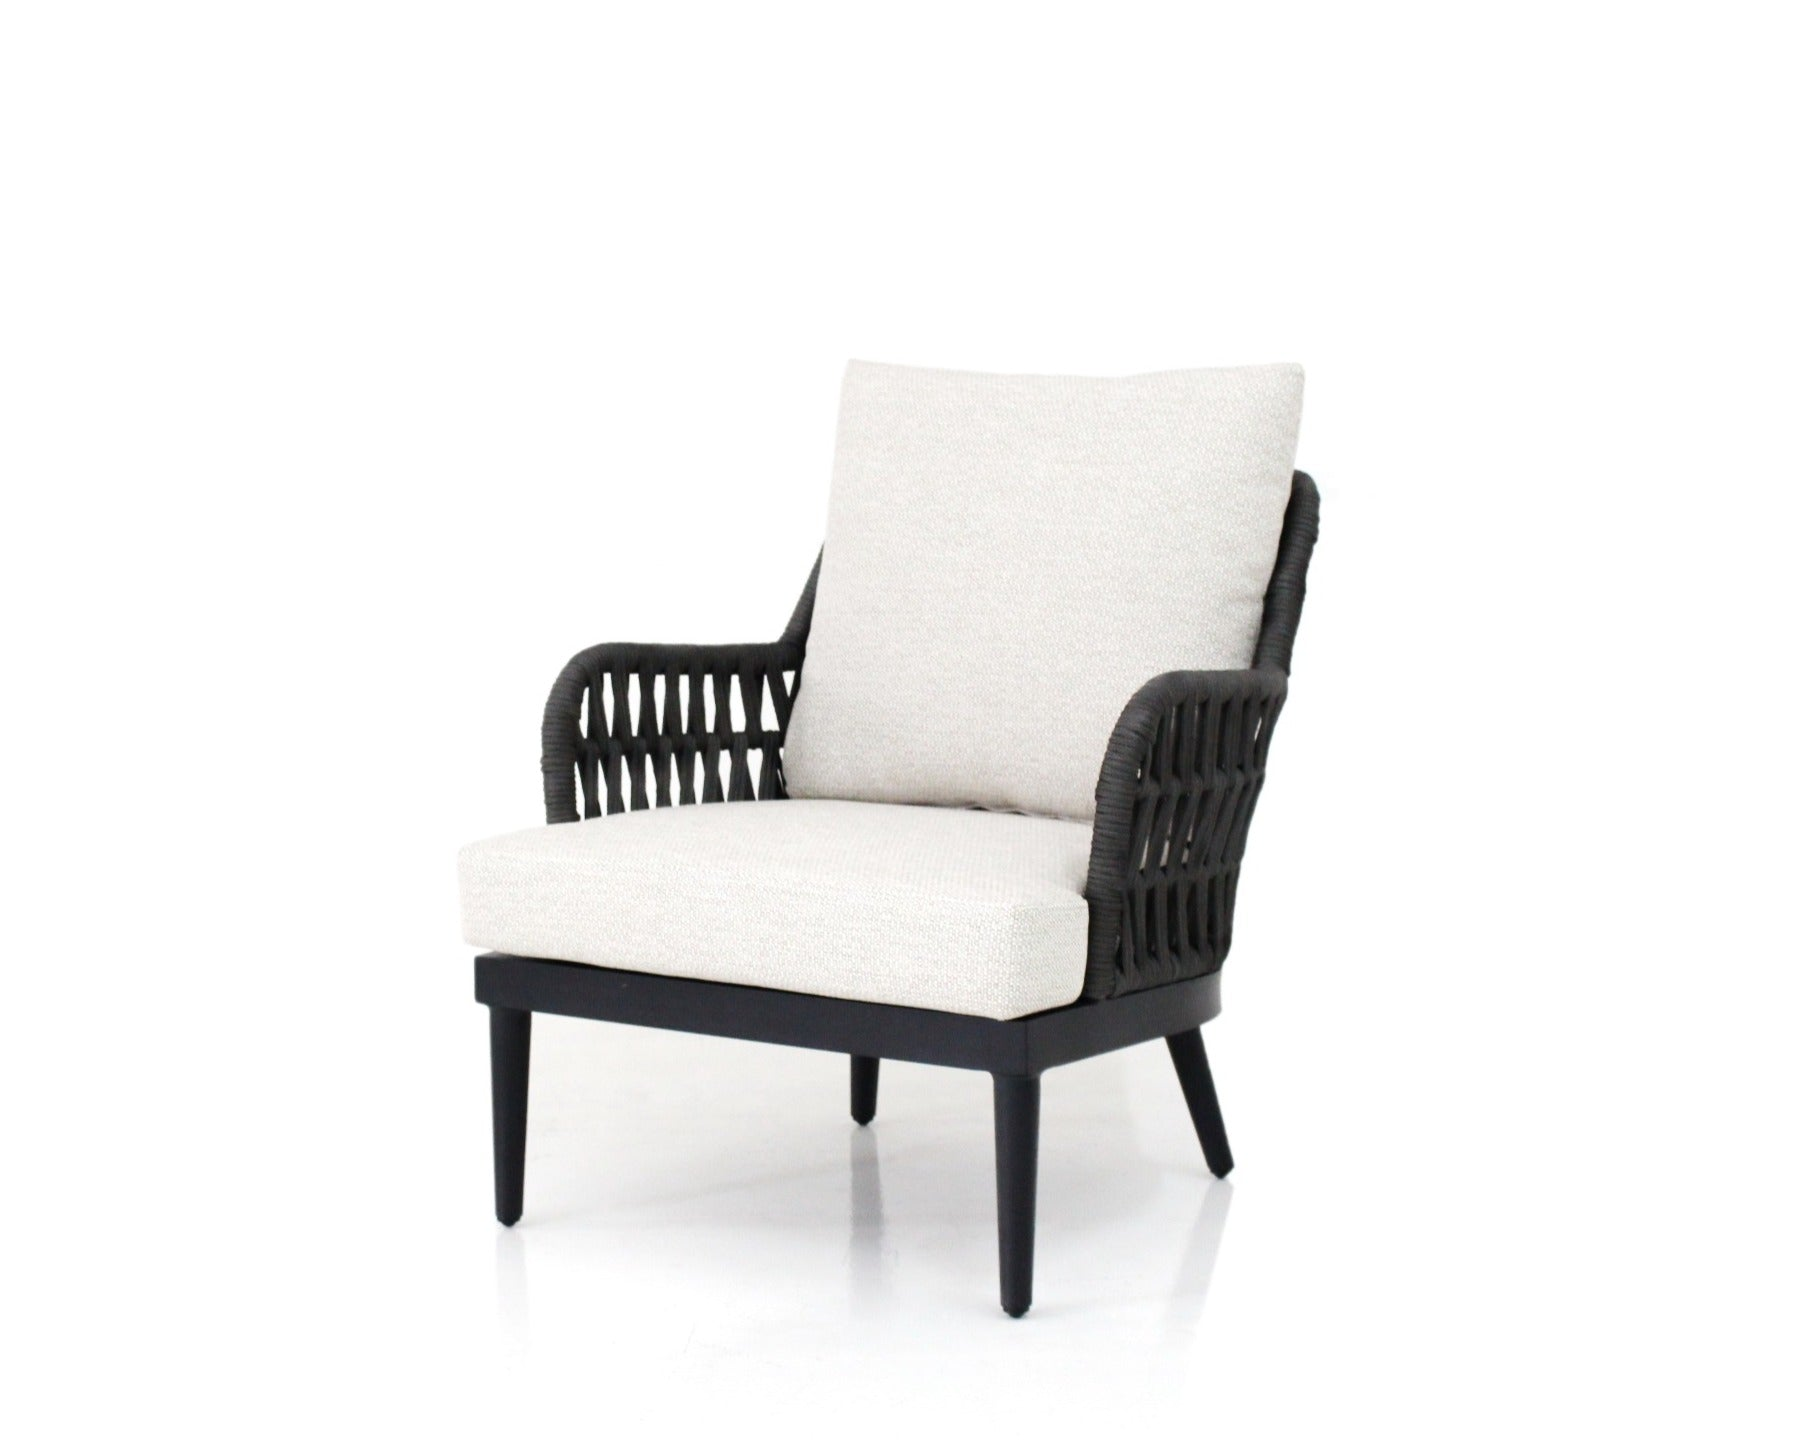 Malikan Lounge Chair